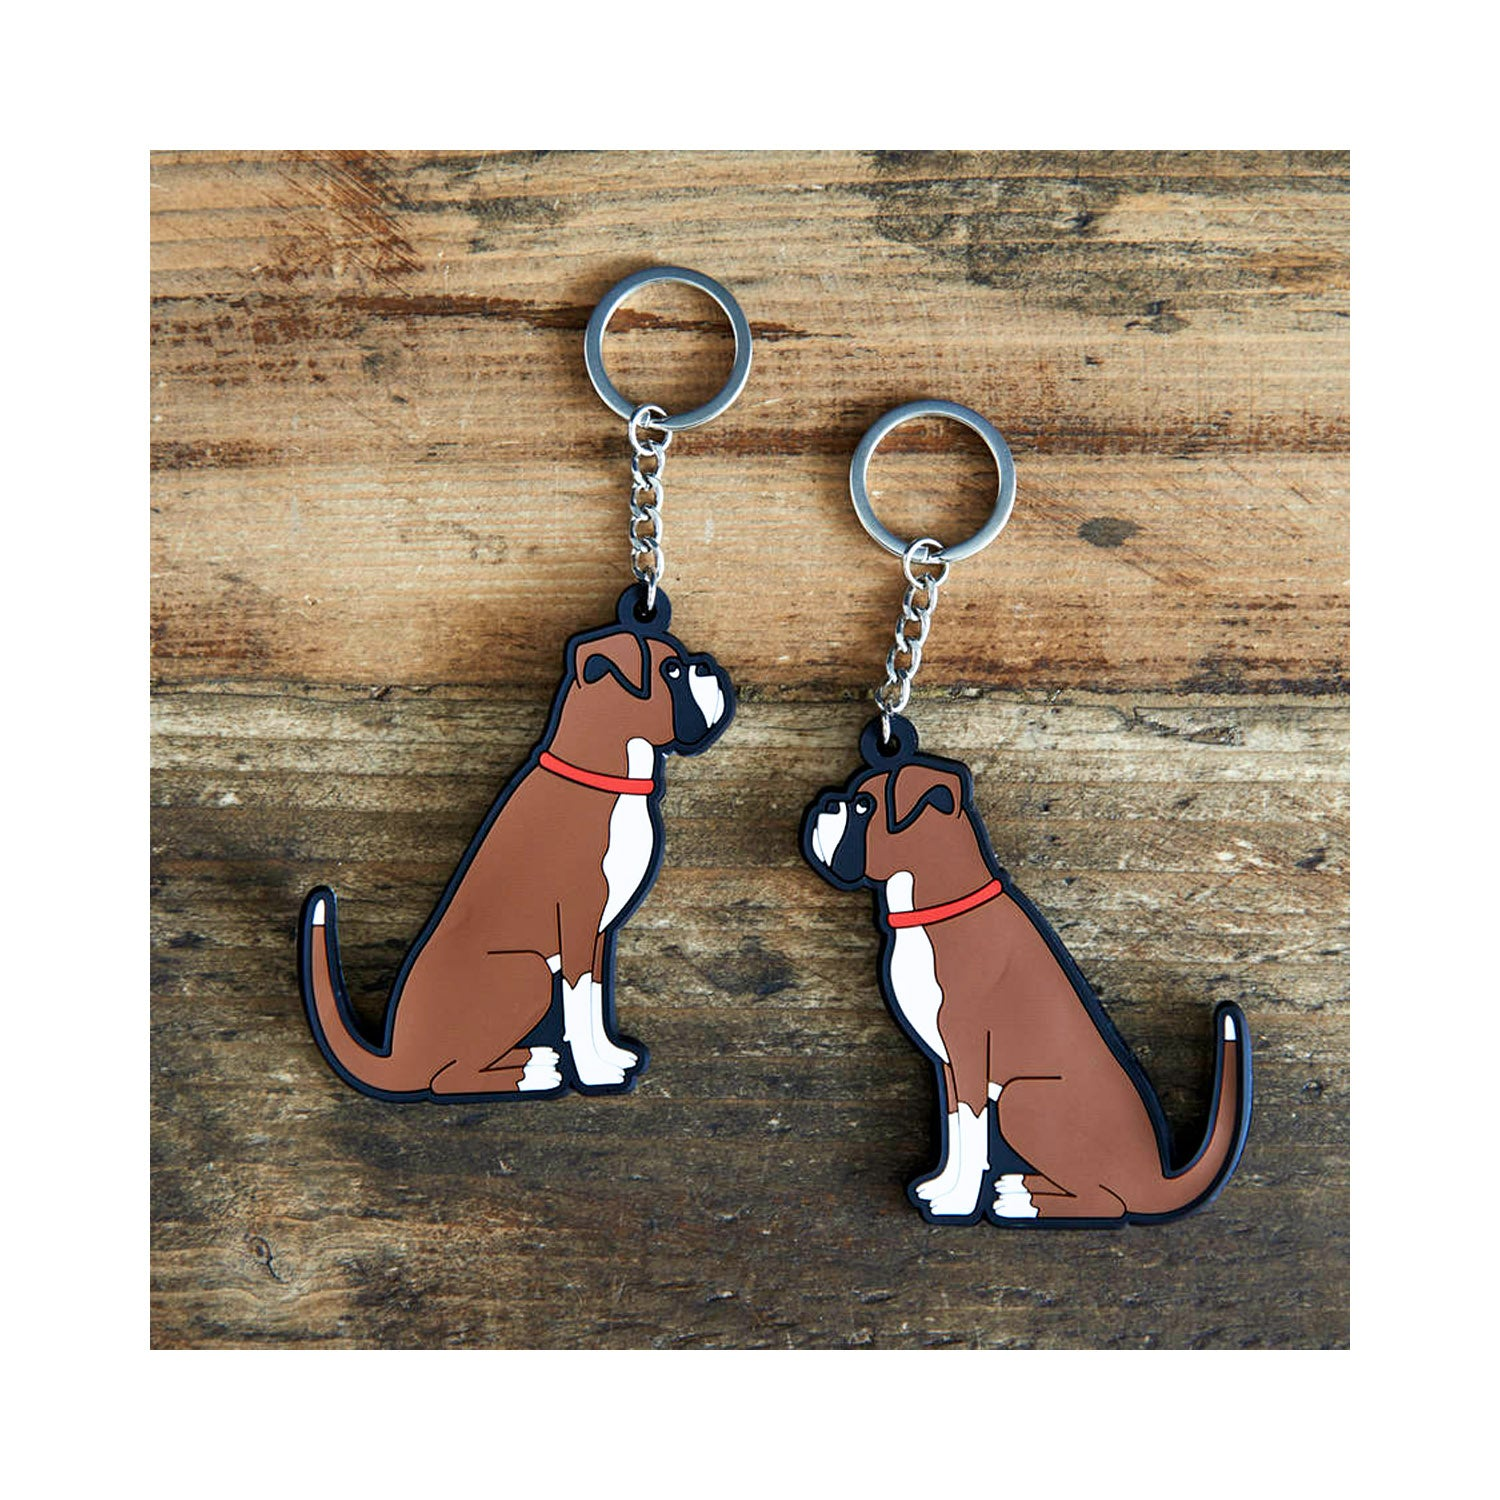 Dog Lover Gifts available at Dog Krazy Gifts - Archie The Boxer Dog Keyring - part of the Sweet William range available from Dog Krazy Gifts